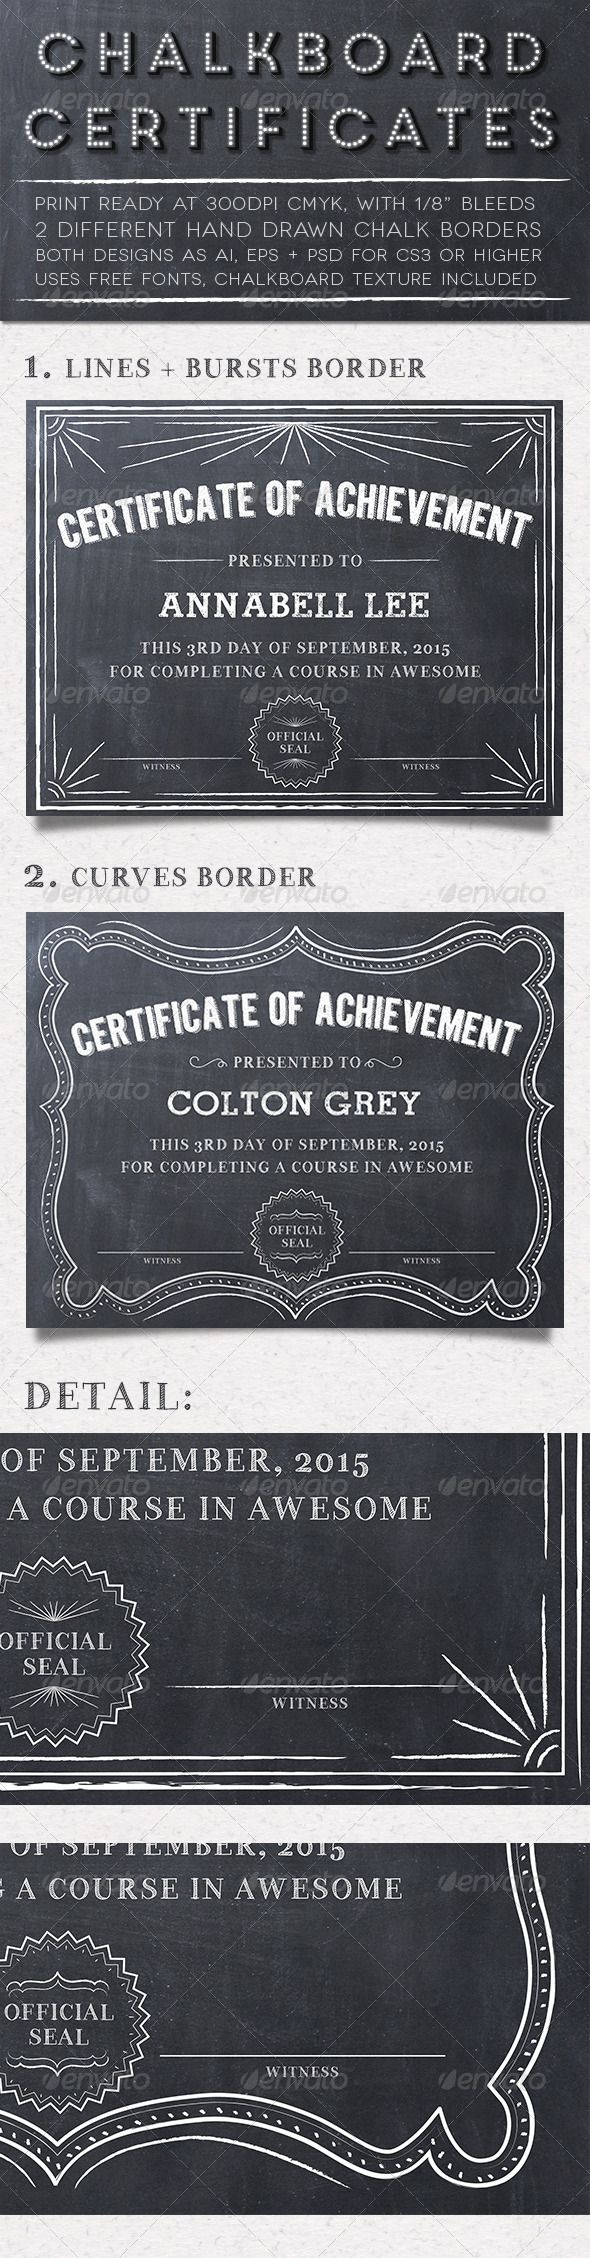 Chalkboard Certificates, get em here: http://graphicriver.net/item/chalkboard-certificates/5565189?ref=everytuesday